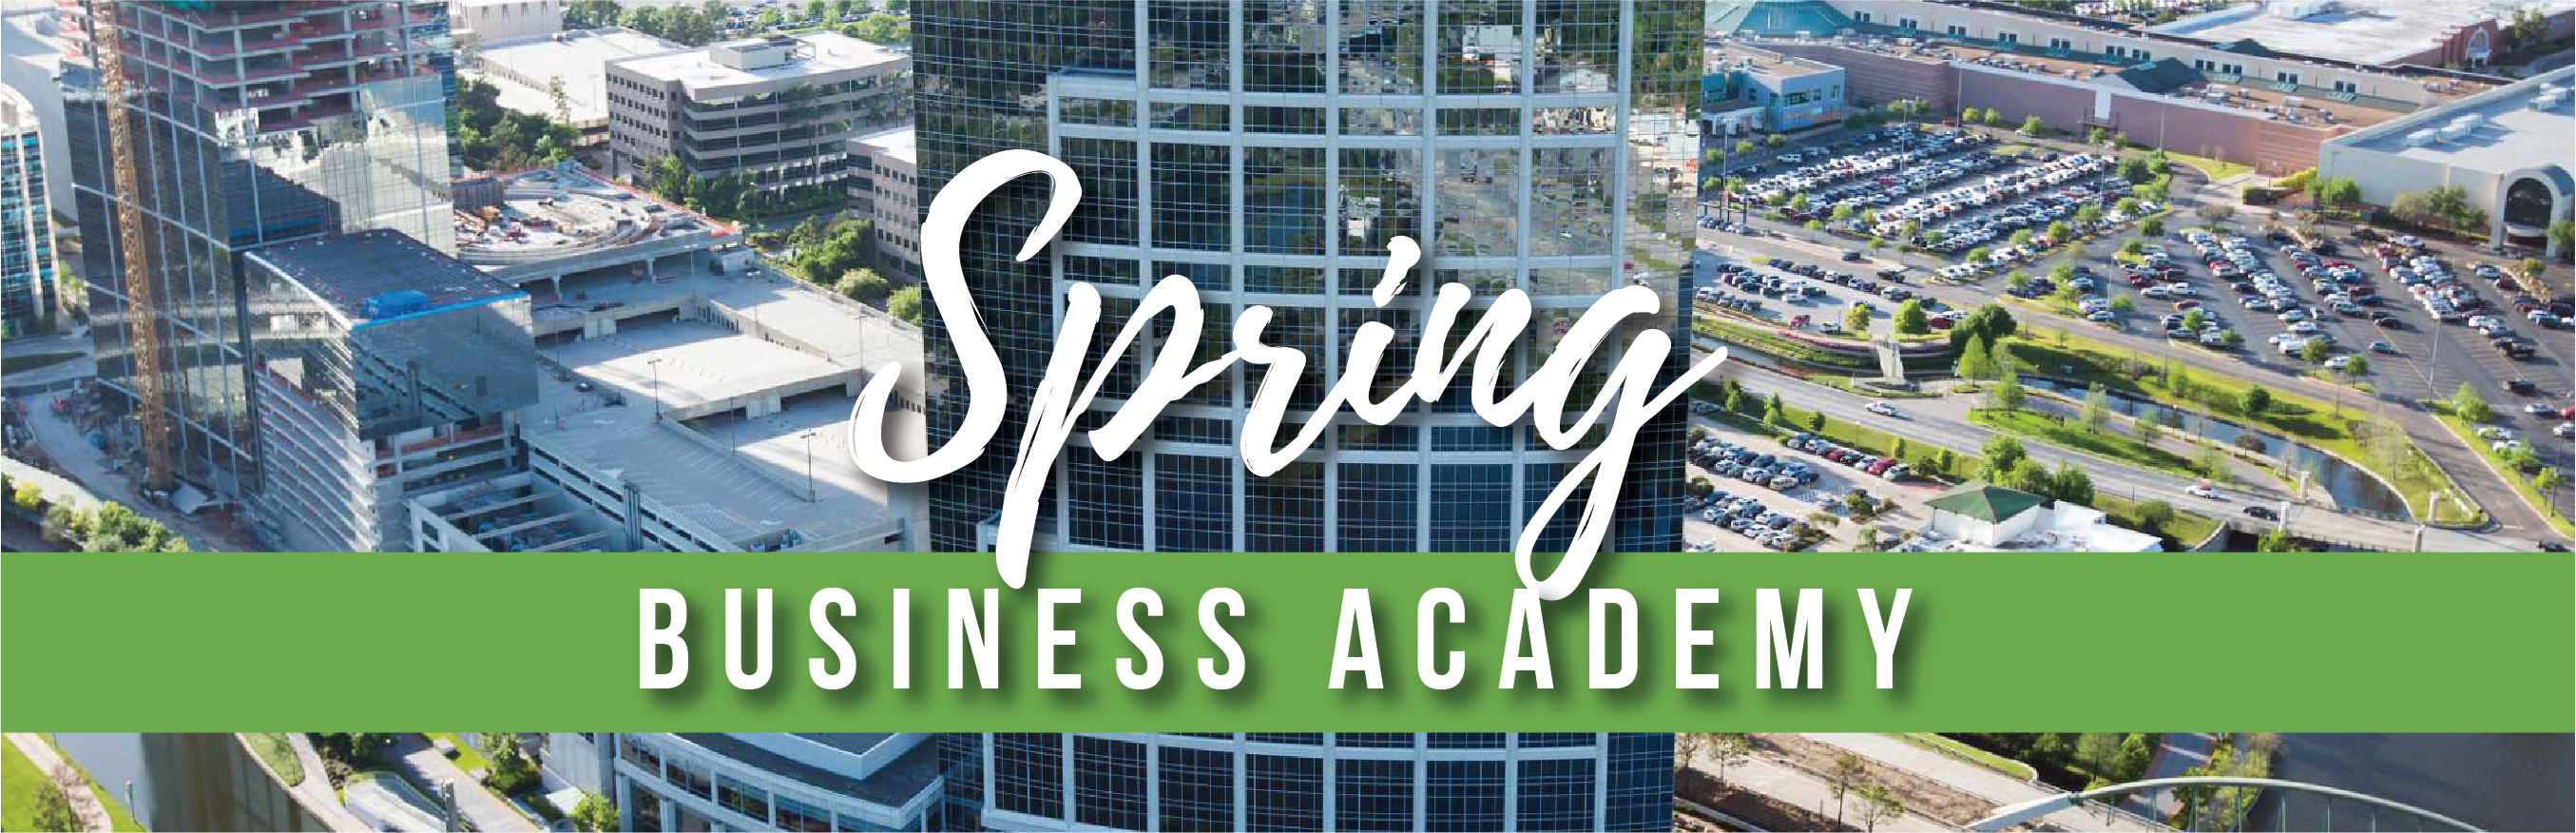 2019 Vision Trends Spring Business Academy